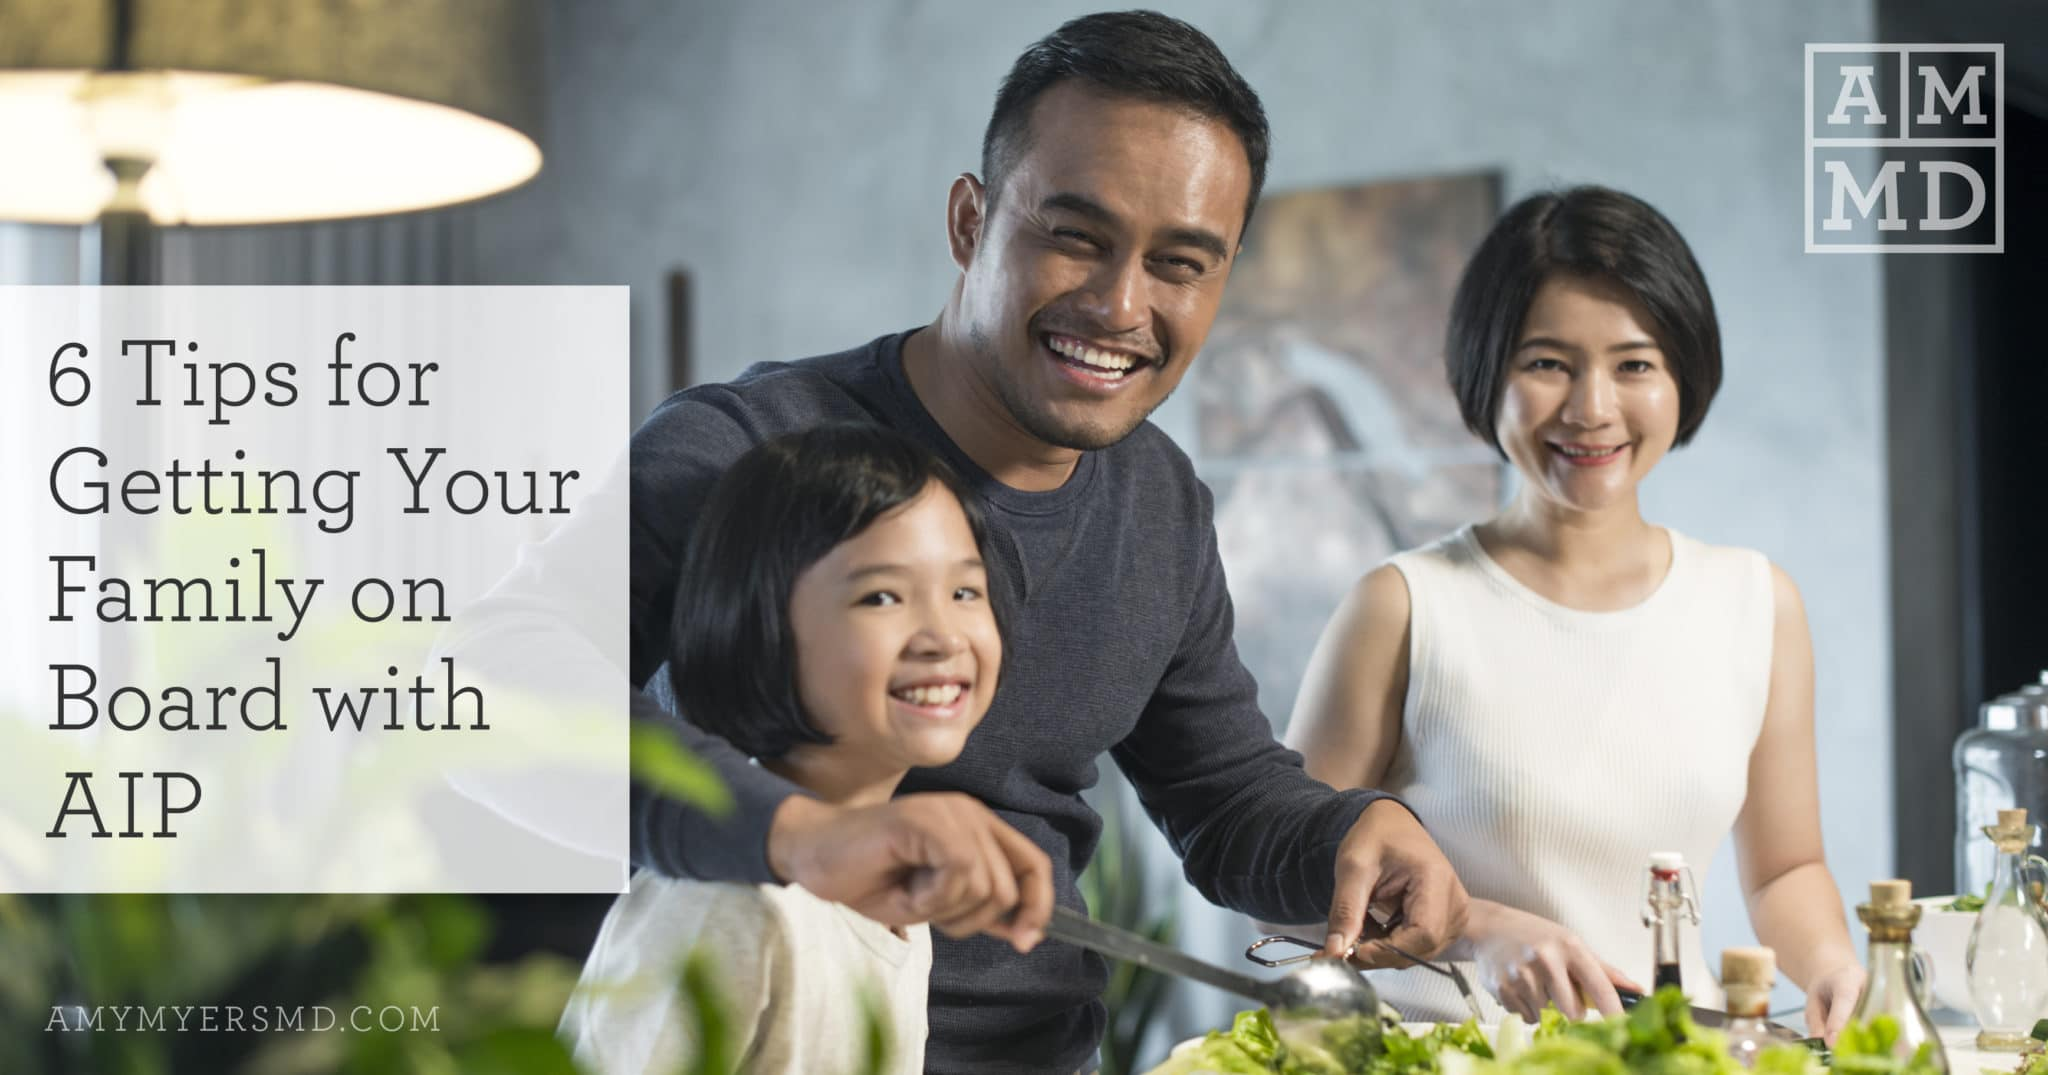 6 Tips for Getting Your Family on Board with AIP - A Family Sharing a Meal - Featured Image - Amy Myers MD